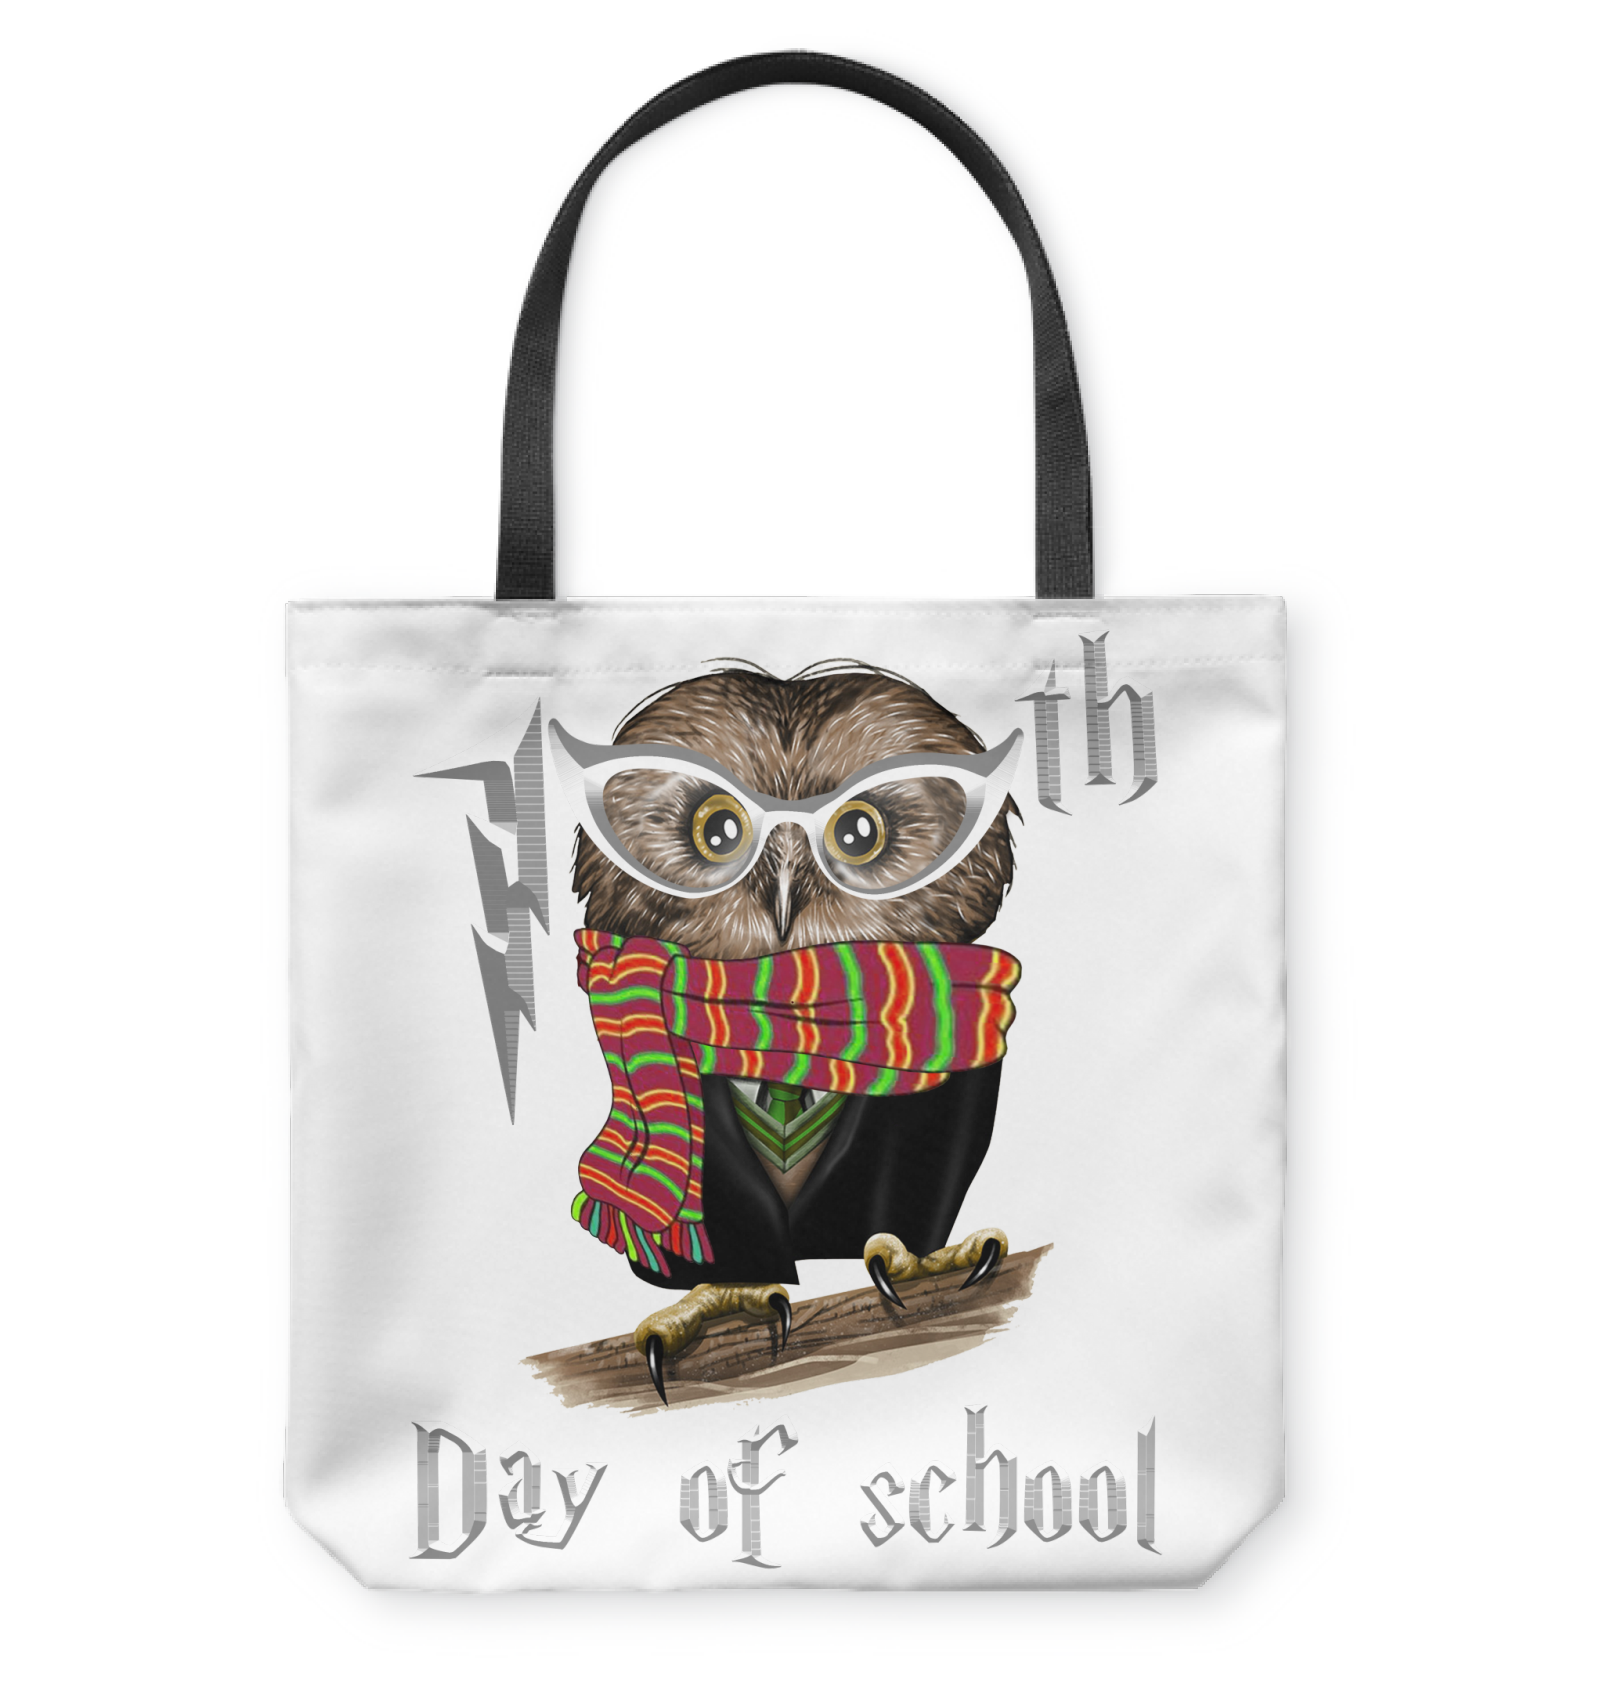 VIRA cool owl tote bag for awesome teachers